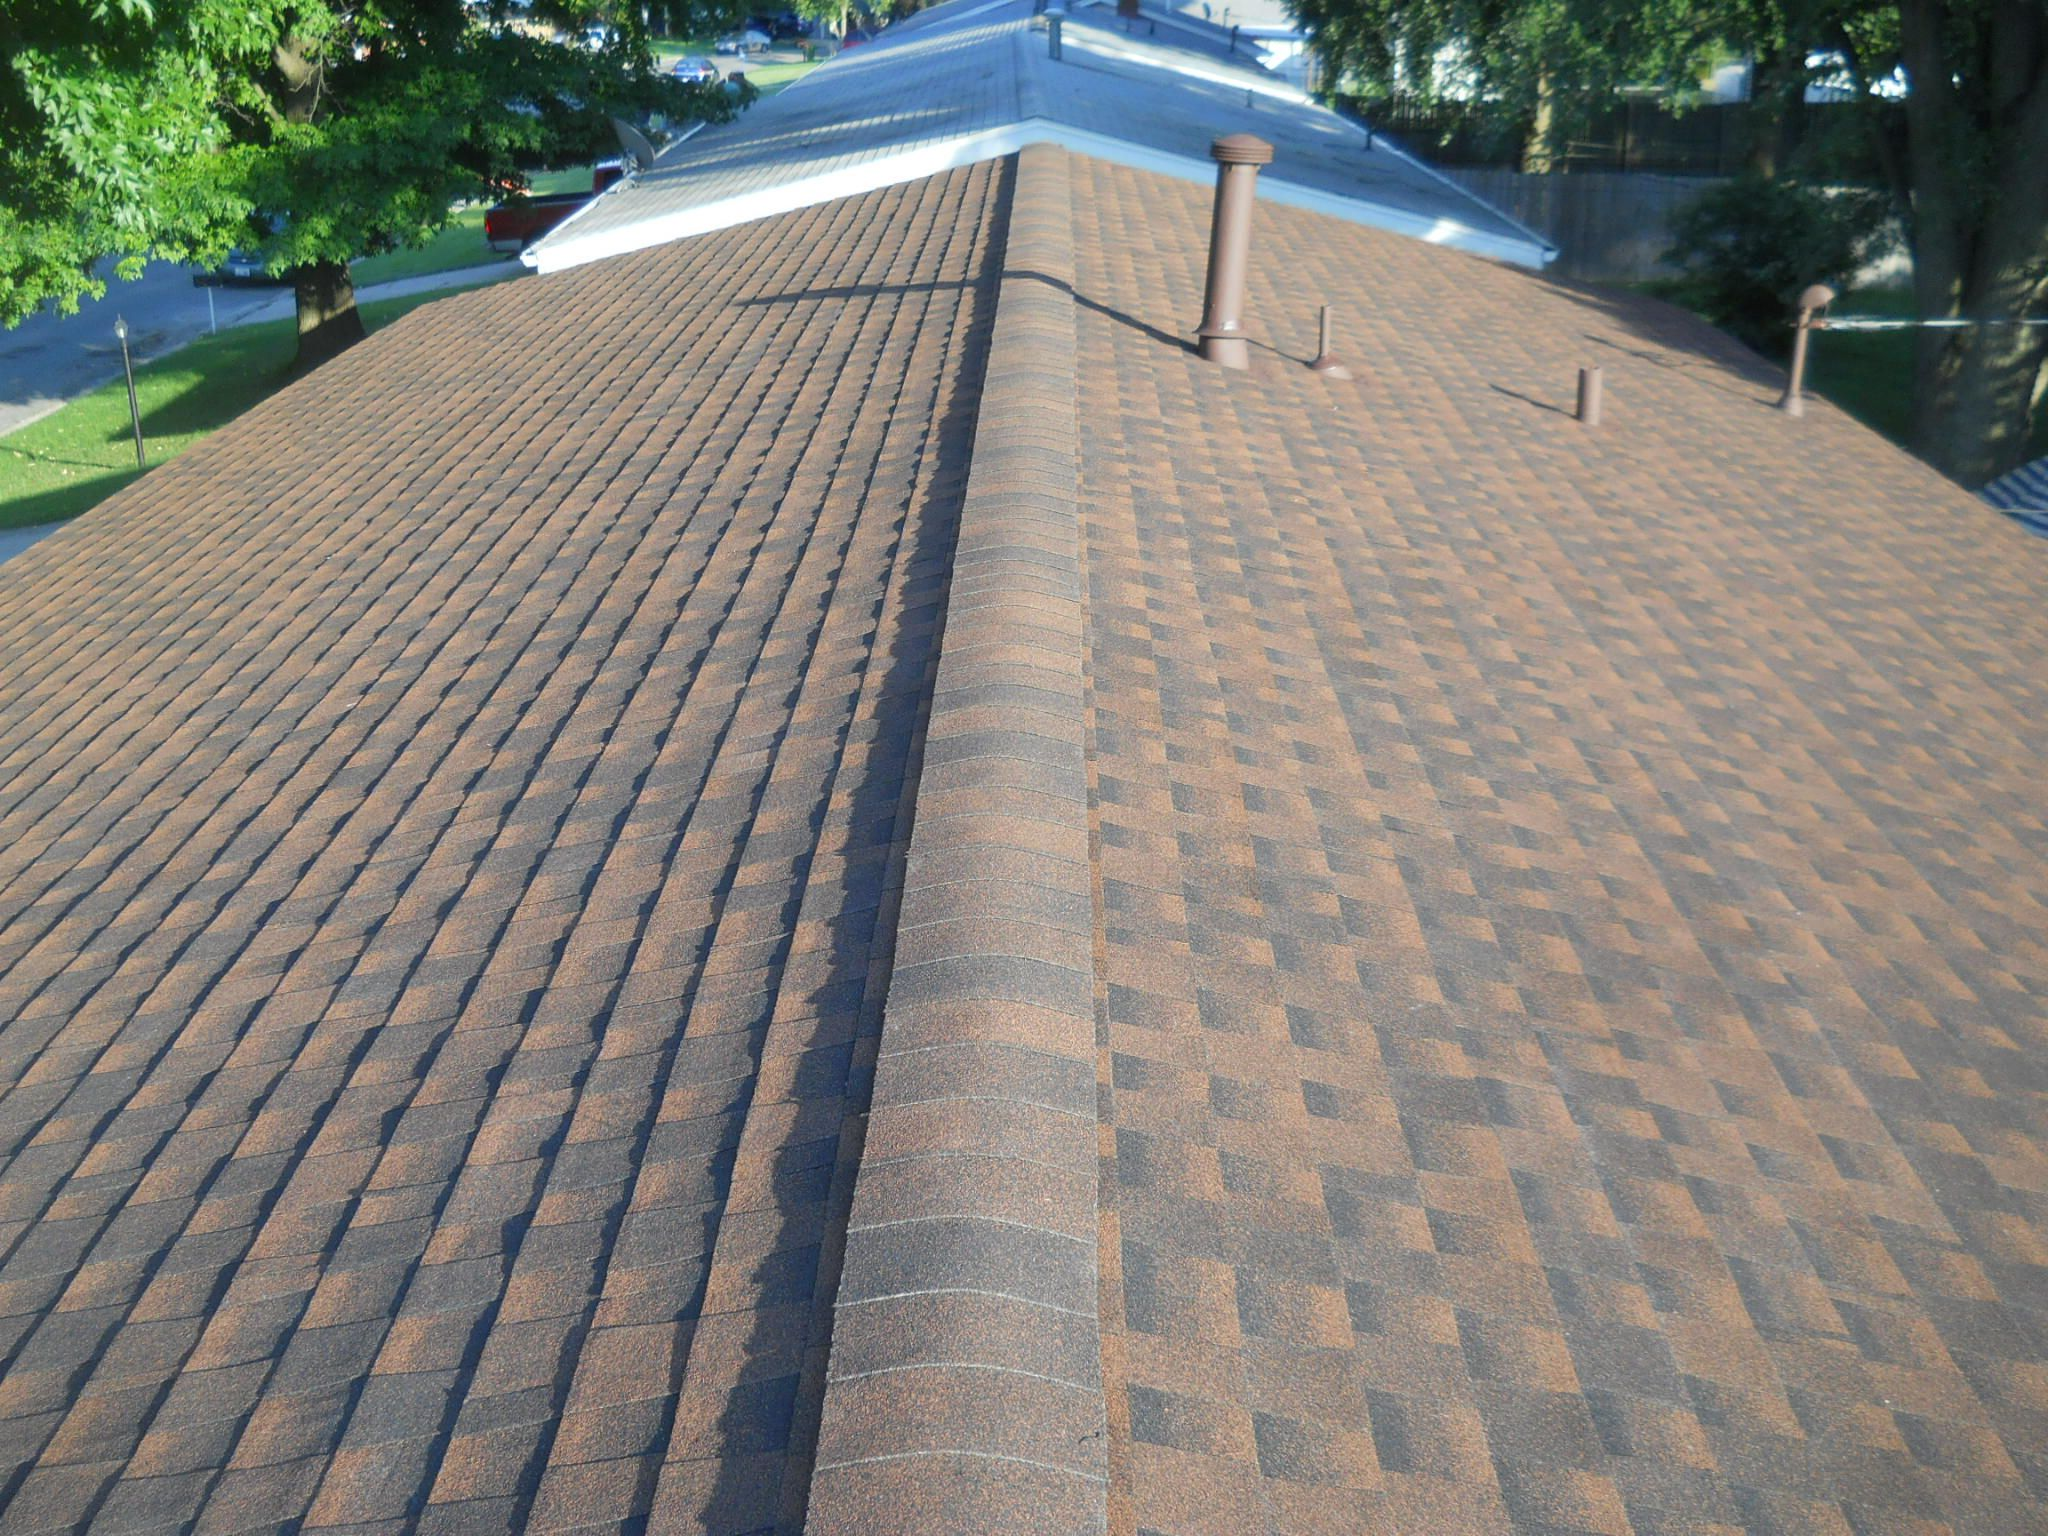 Best Gaf Timberline Hickory Shingles We Offer Residential 400 x 300